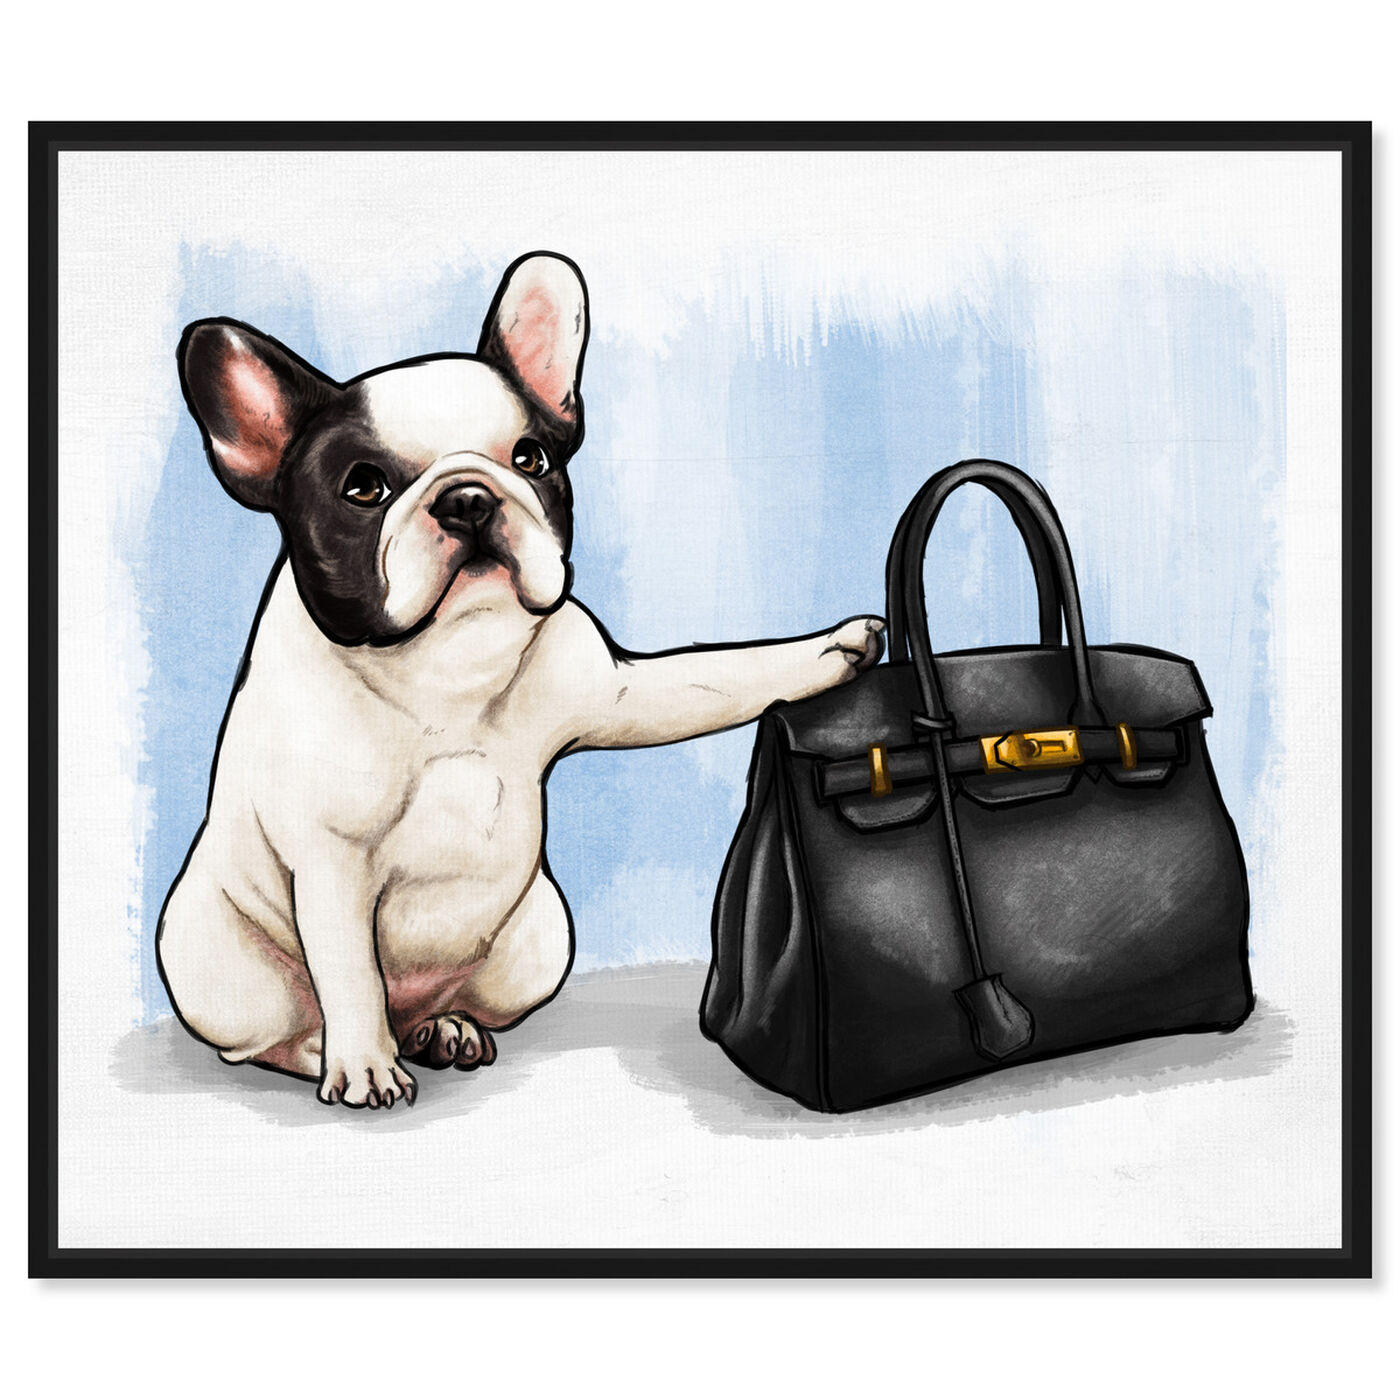 Front view of The Clear Choice featuring fashion and glam and handbags art.